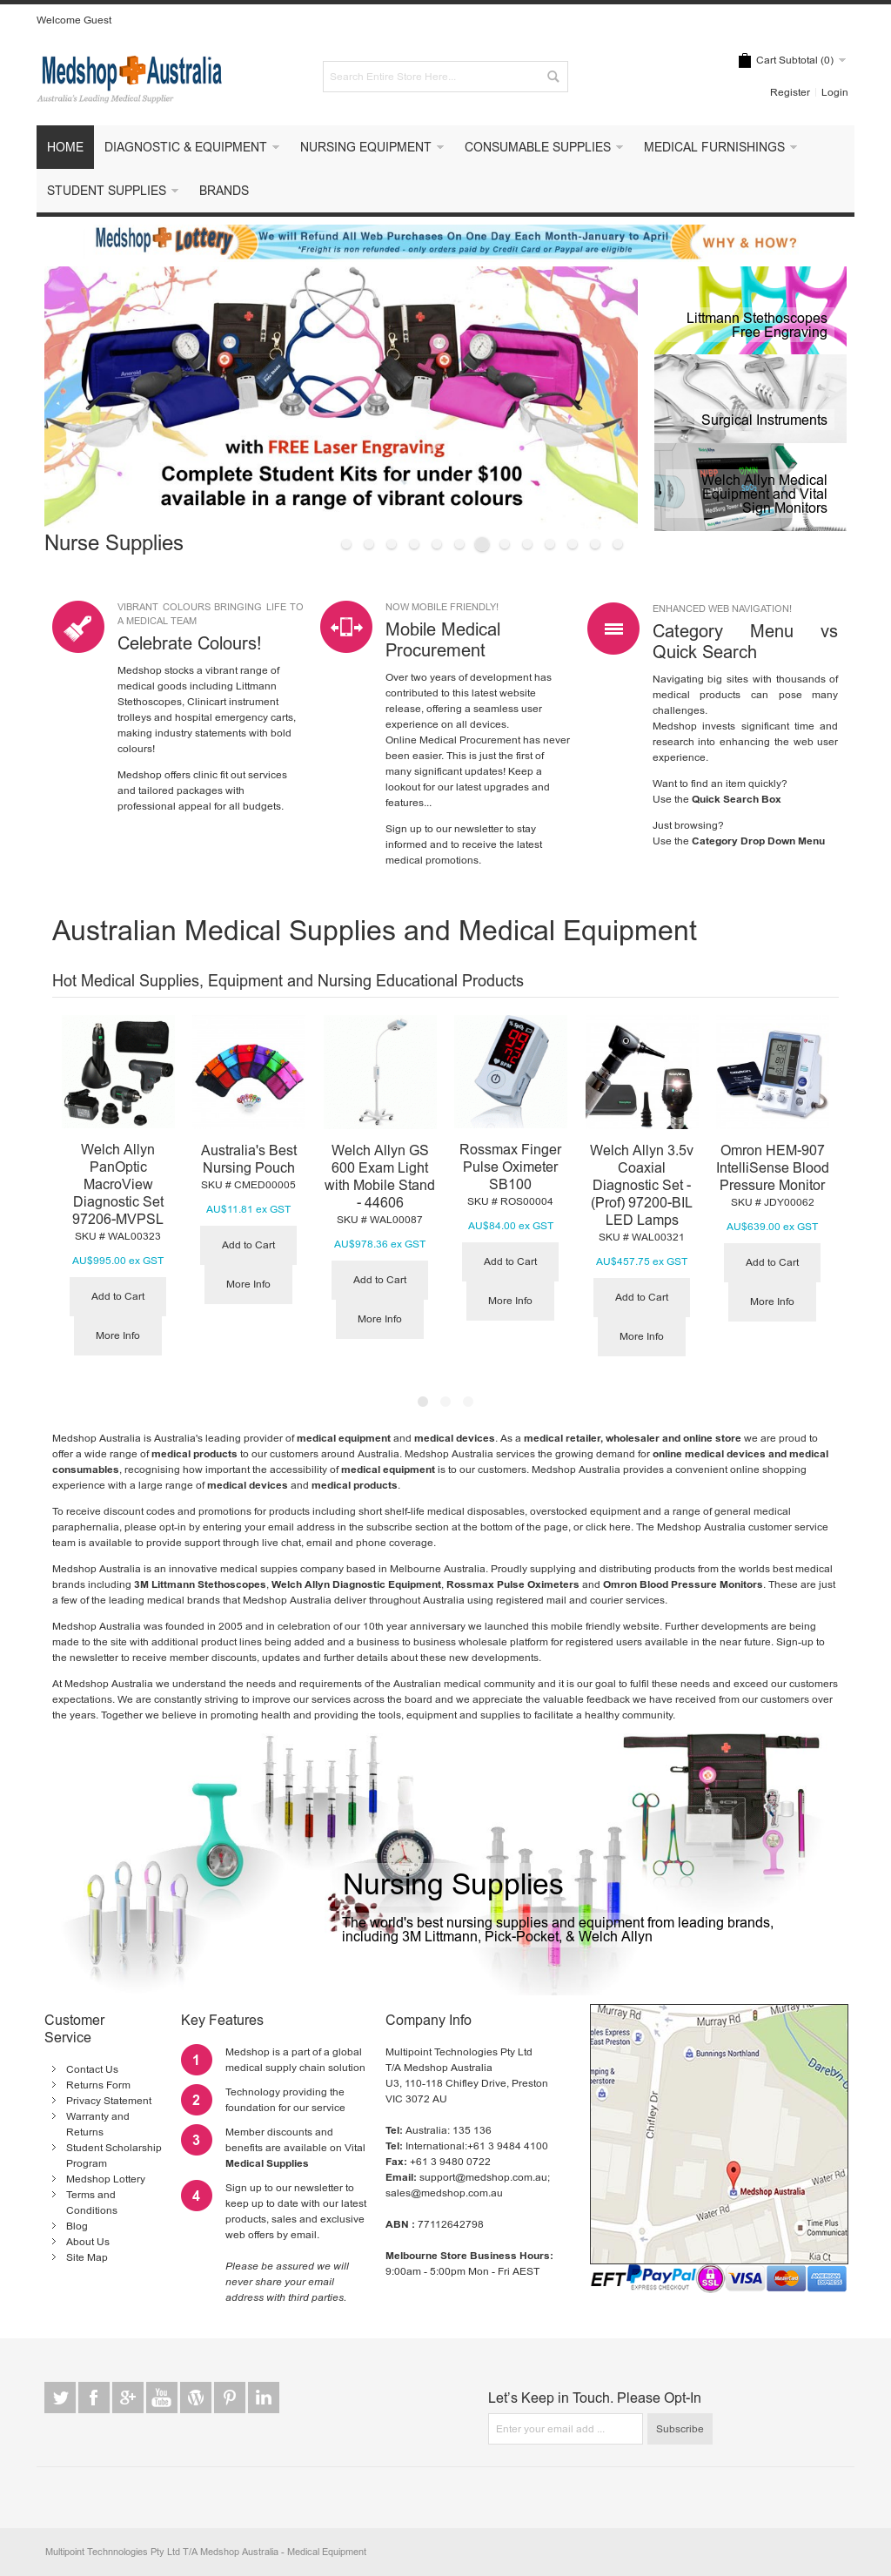 Medshop Australia Medical Supplies Competitors, Revenue and